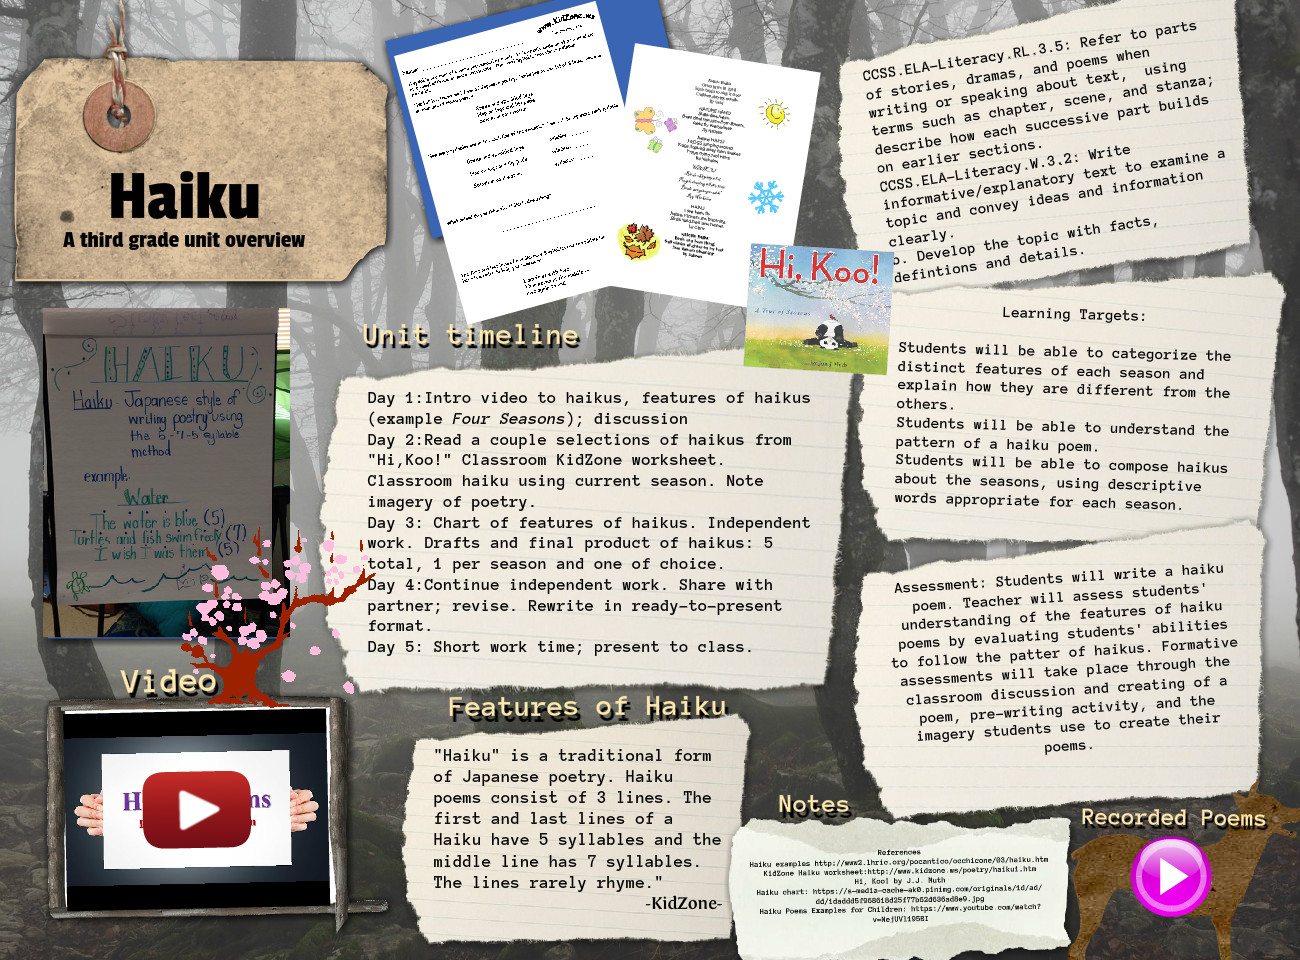 Haiku Poems Unit Overview Text Images Music Video